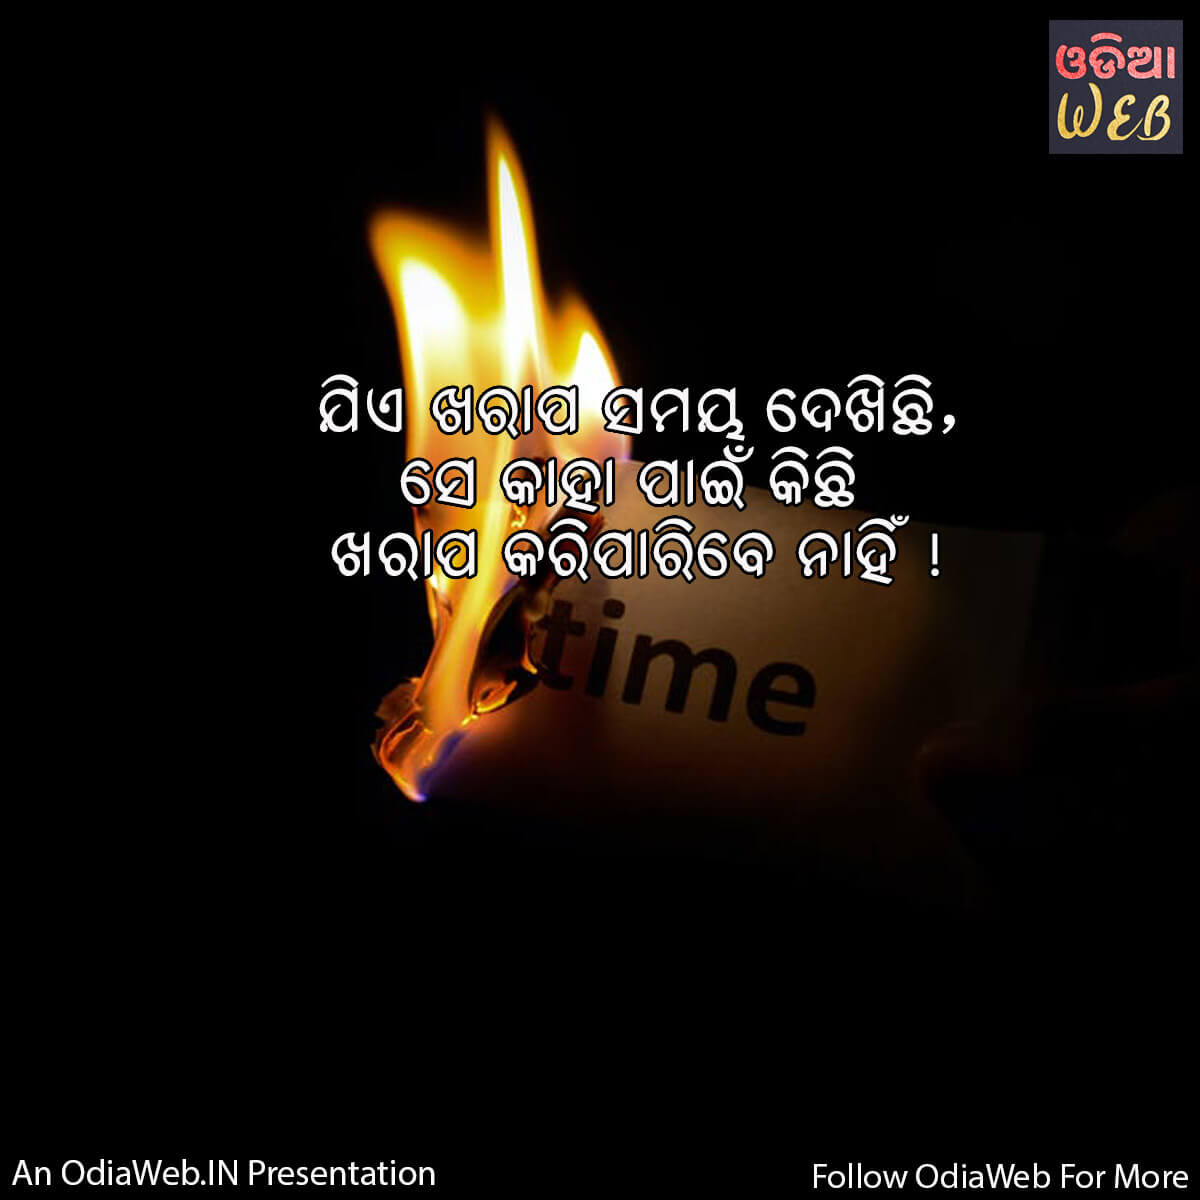 Odia Time Quotes4